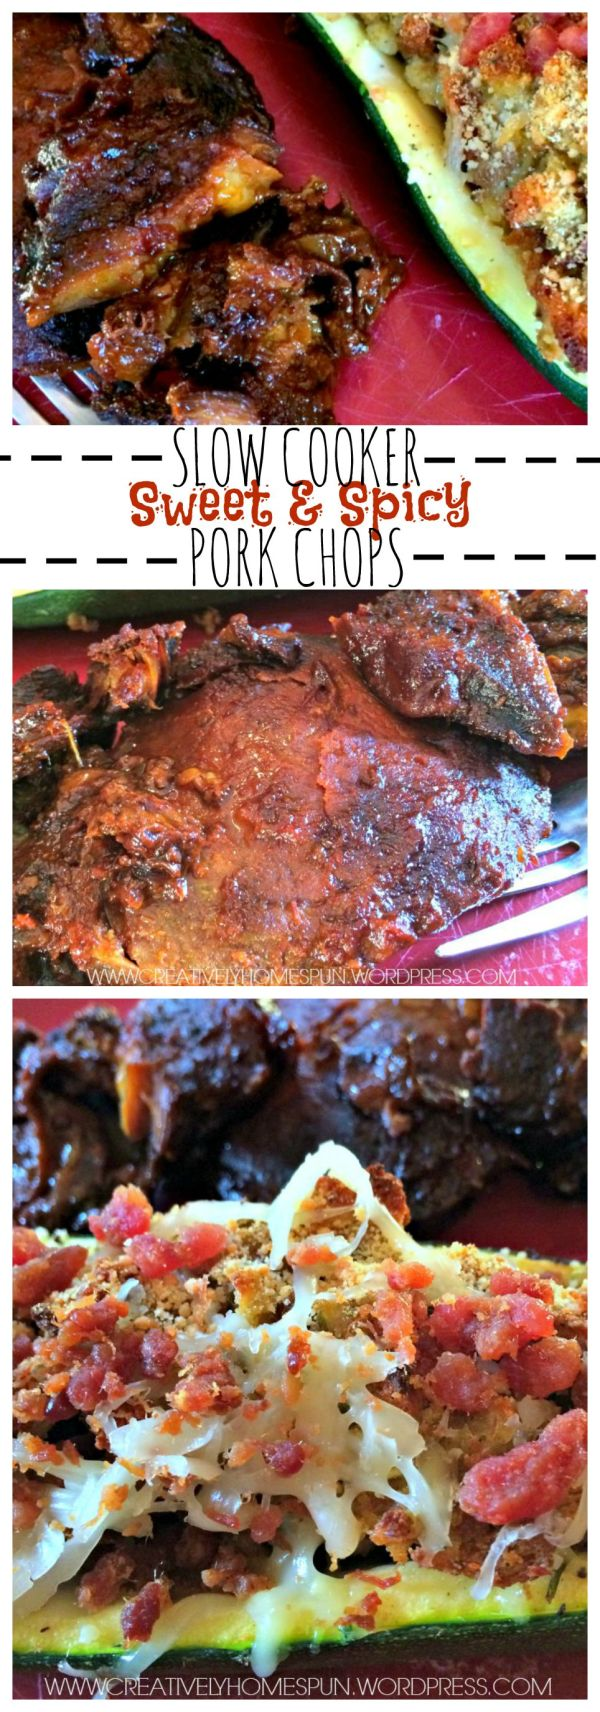 Savory Slow Cooker Sweet & Spicy Pork Chops! #slowcookermeals #easydinner #porkchops